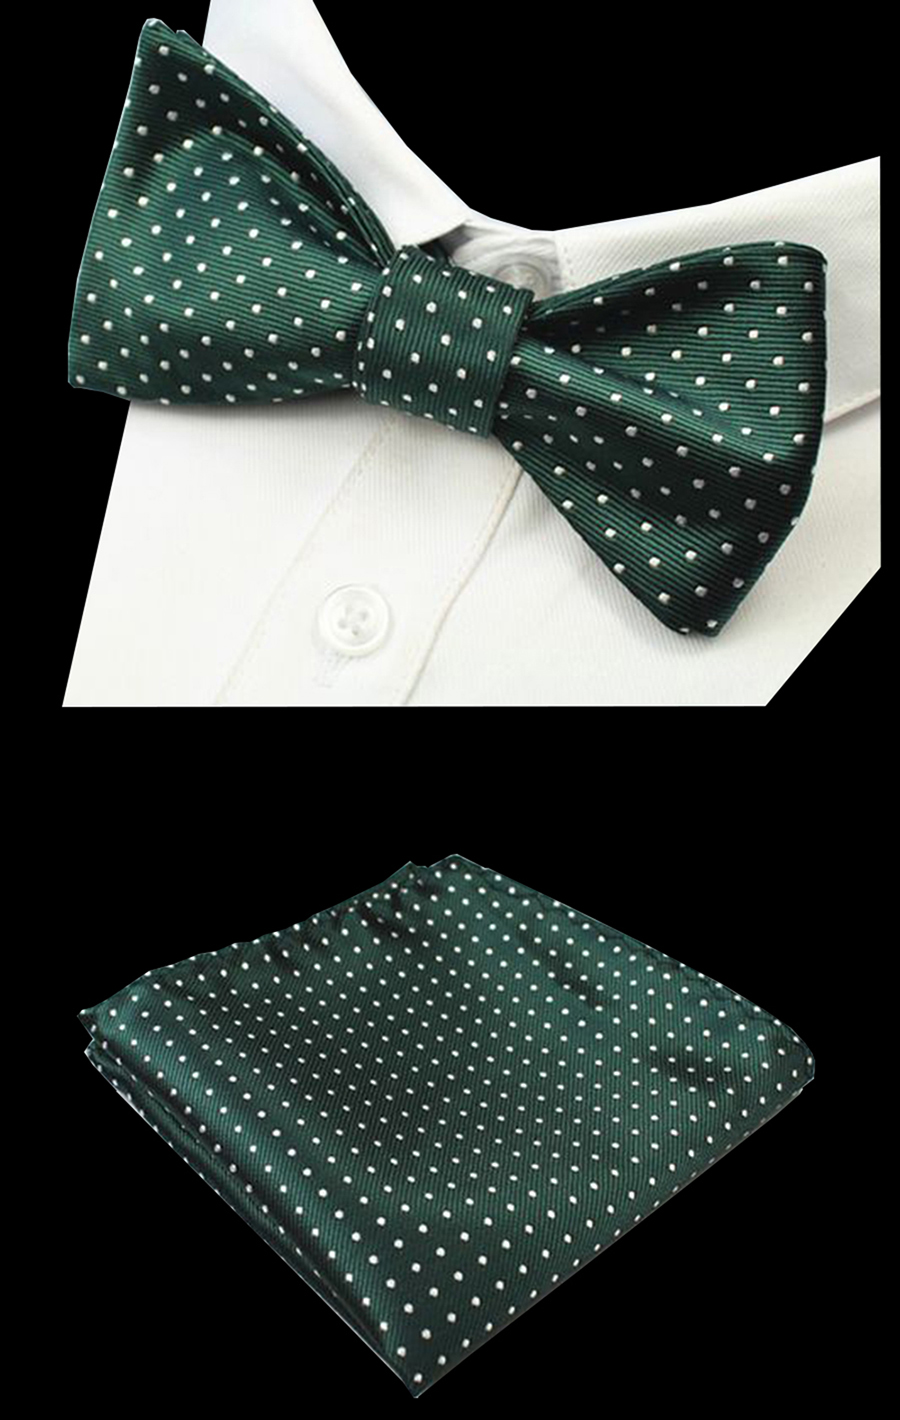 RBOCOTT Mens Autoturisme Dot Bow Tie Set Green Mătase Jacquard țesute Bowtie Set Bowties de nunta și Pocket Square Birthday Party